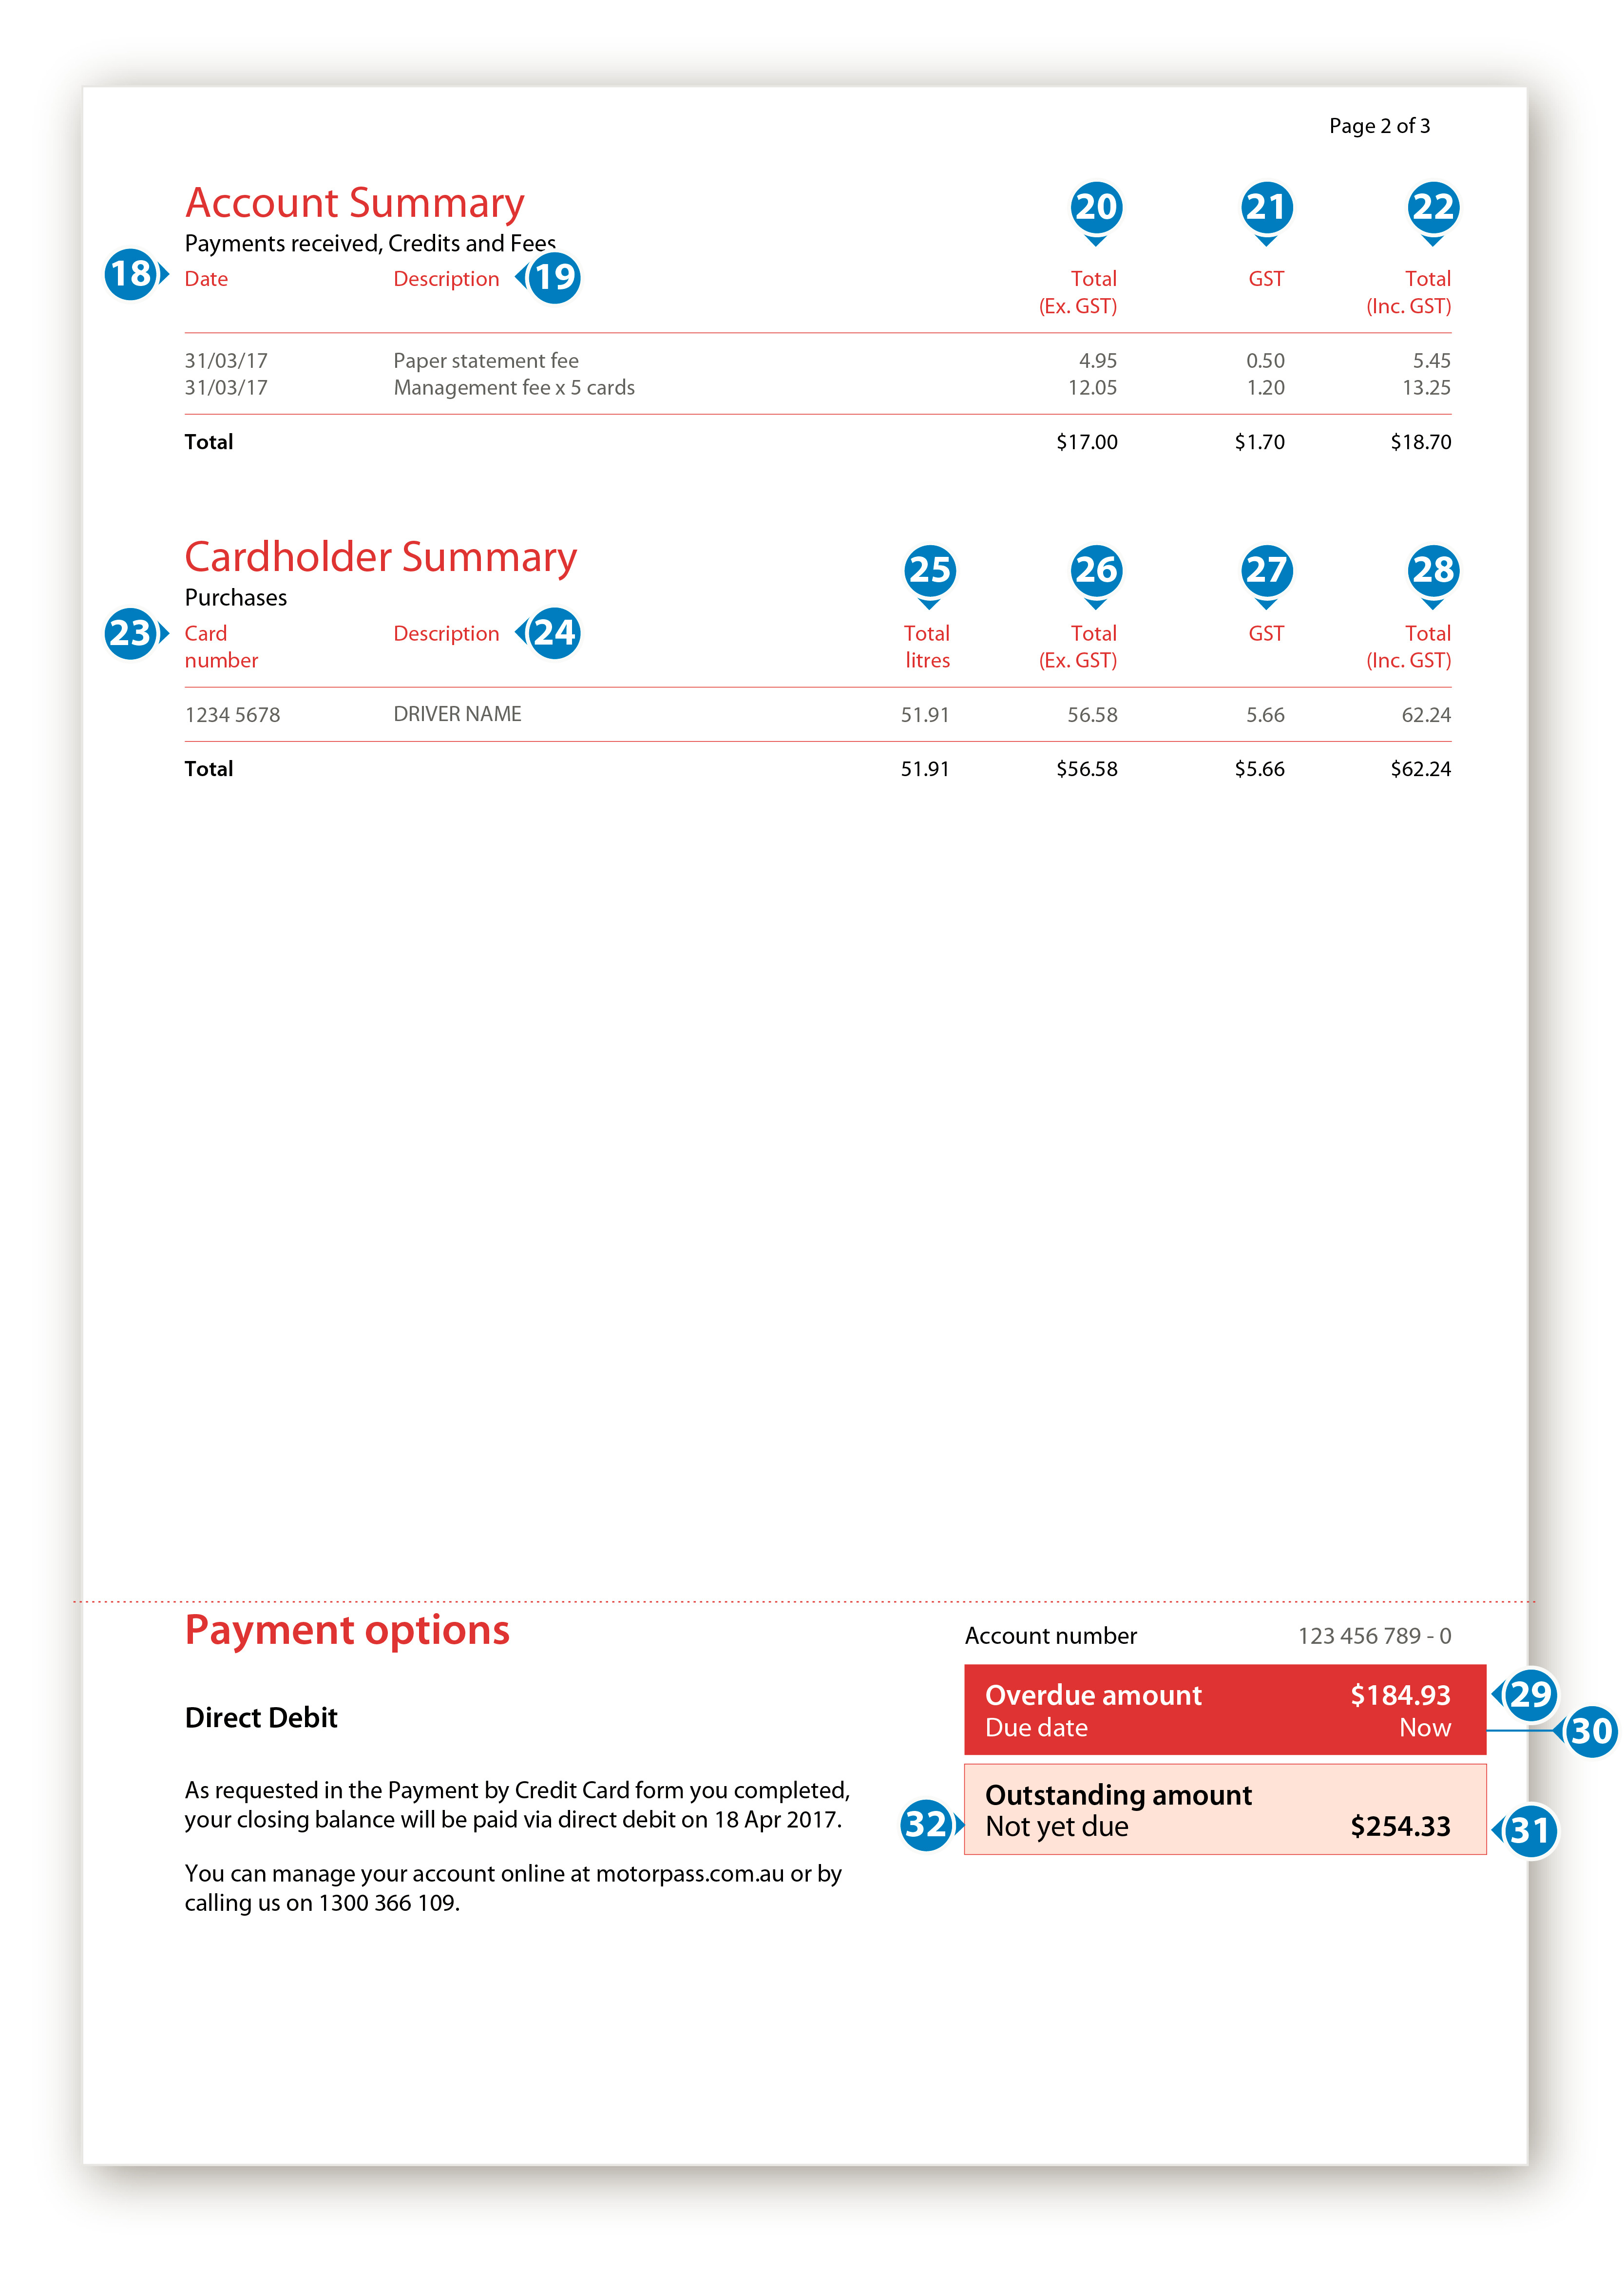 WEX Motorpass Paper Statement Example - Account and Cardholder Summaries